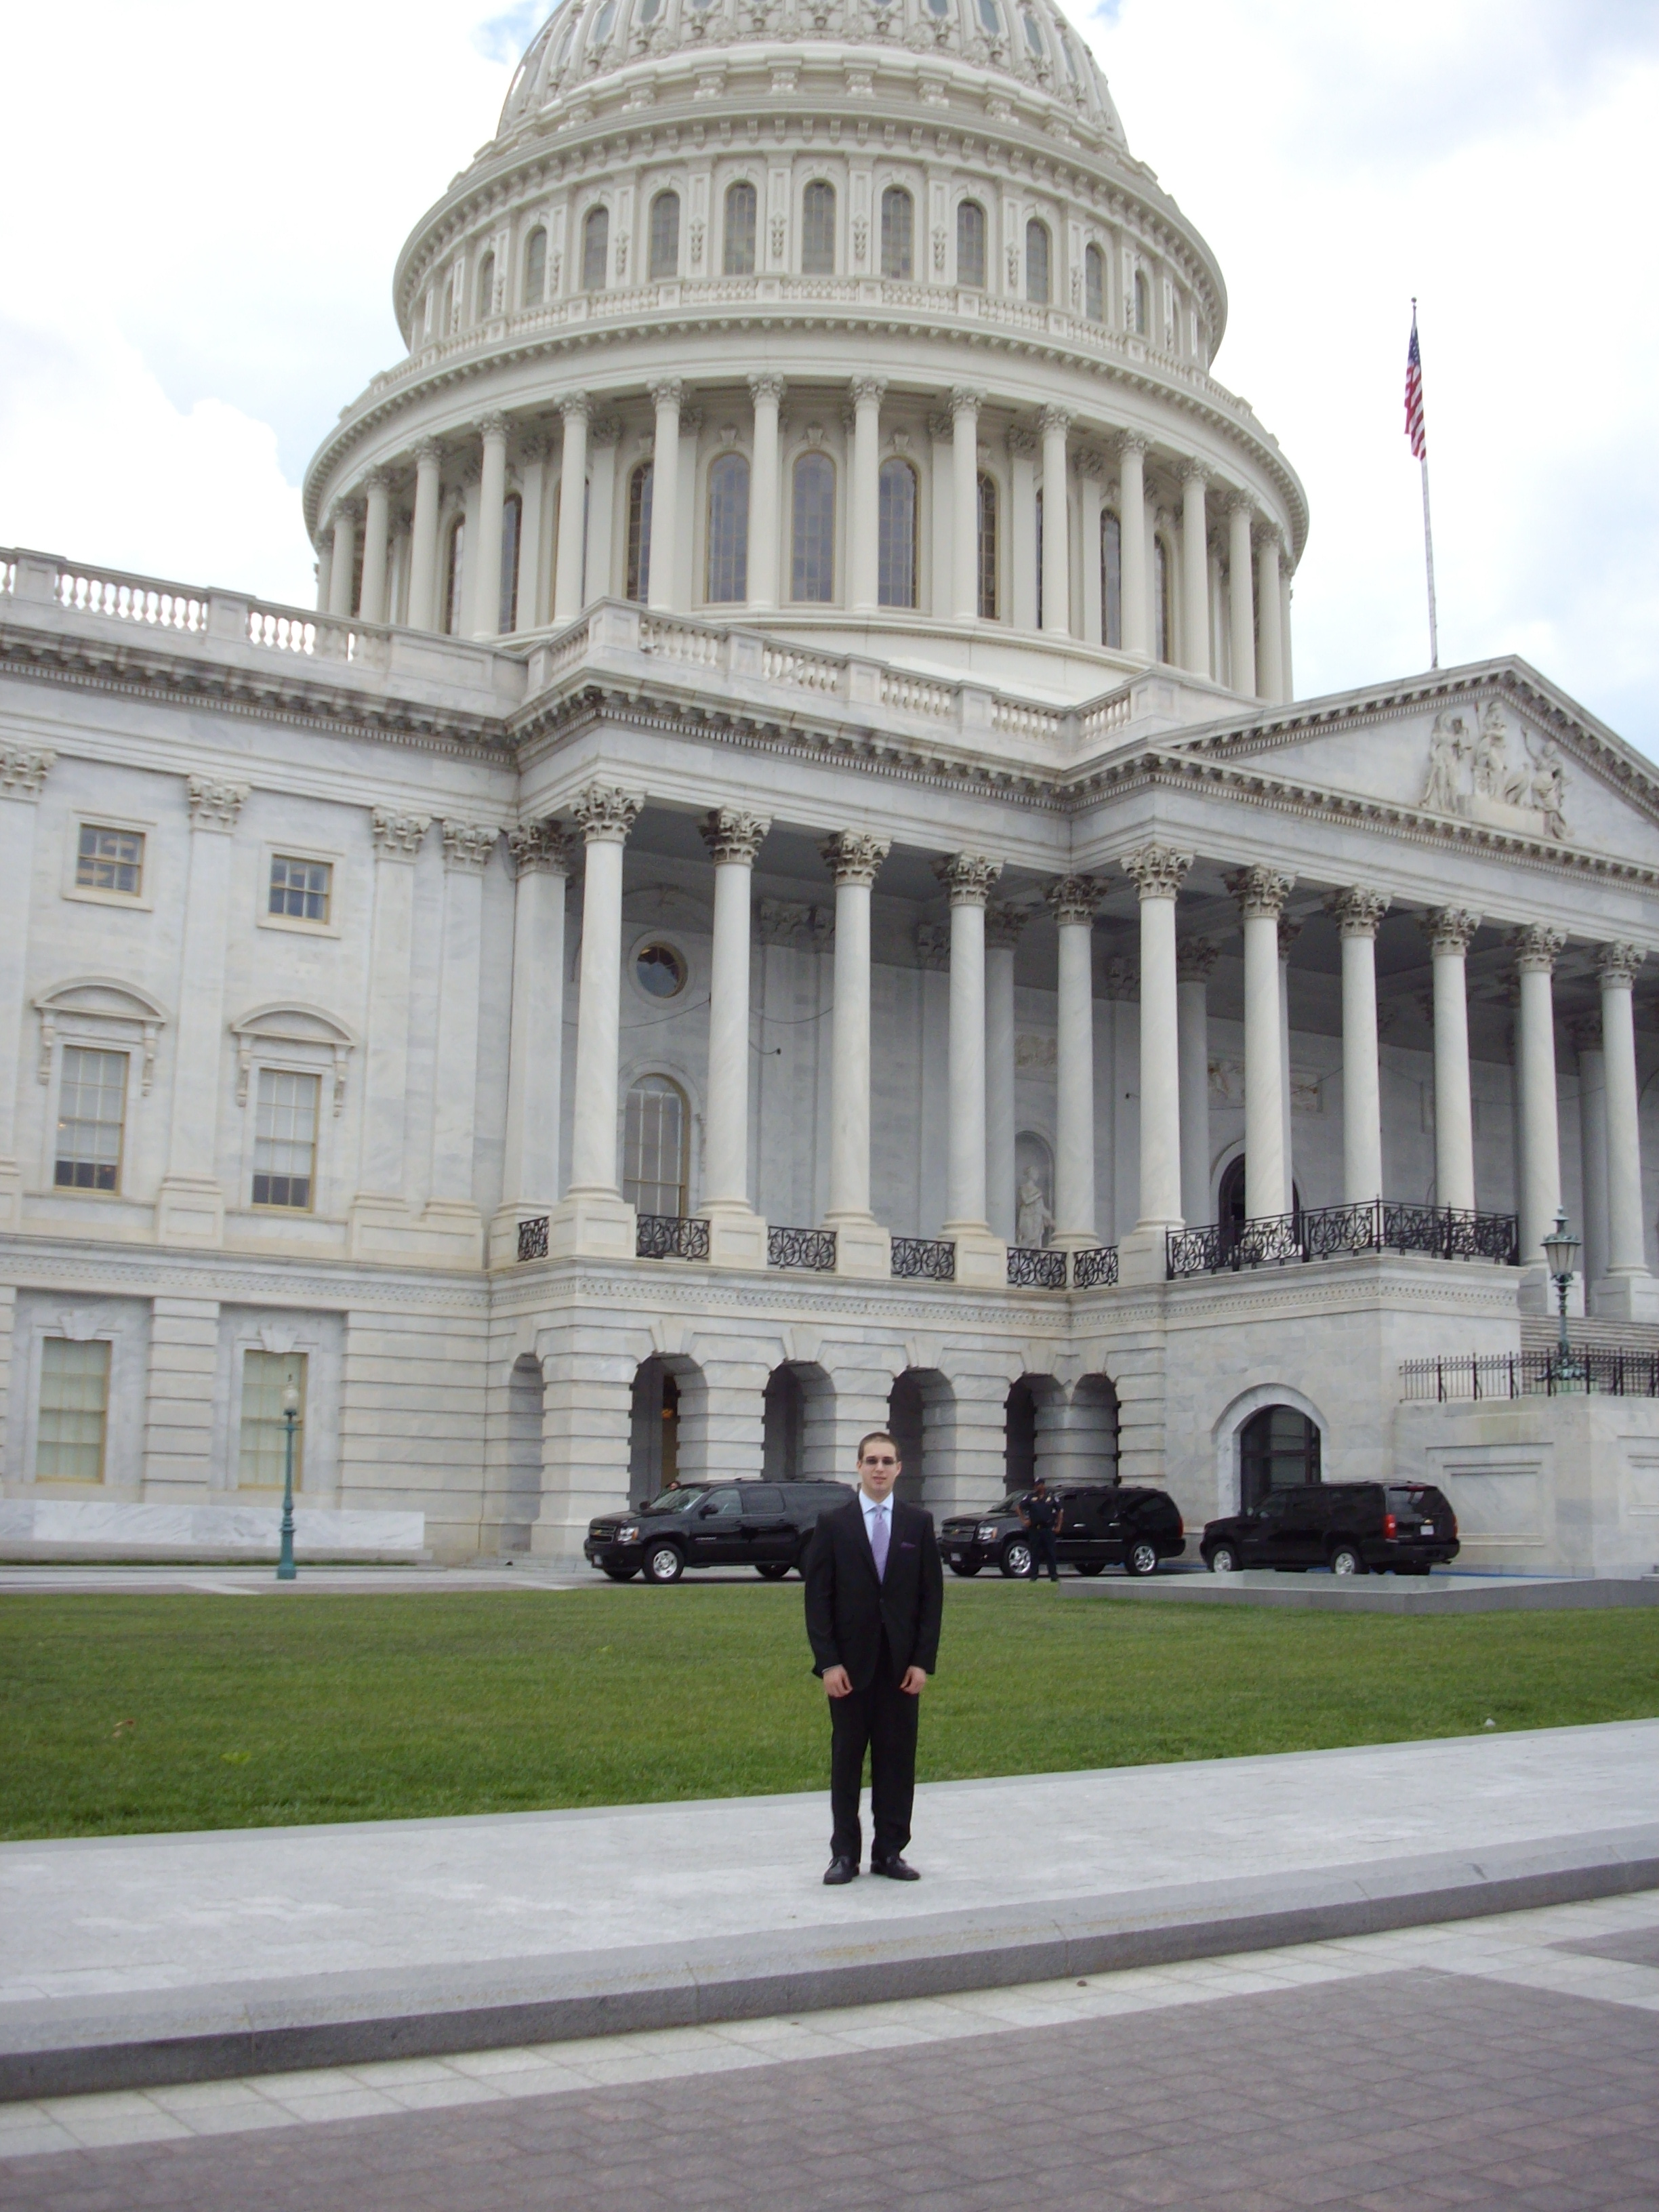 Outside the Capitol Building in Washington, DC in May 2011.